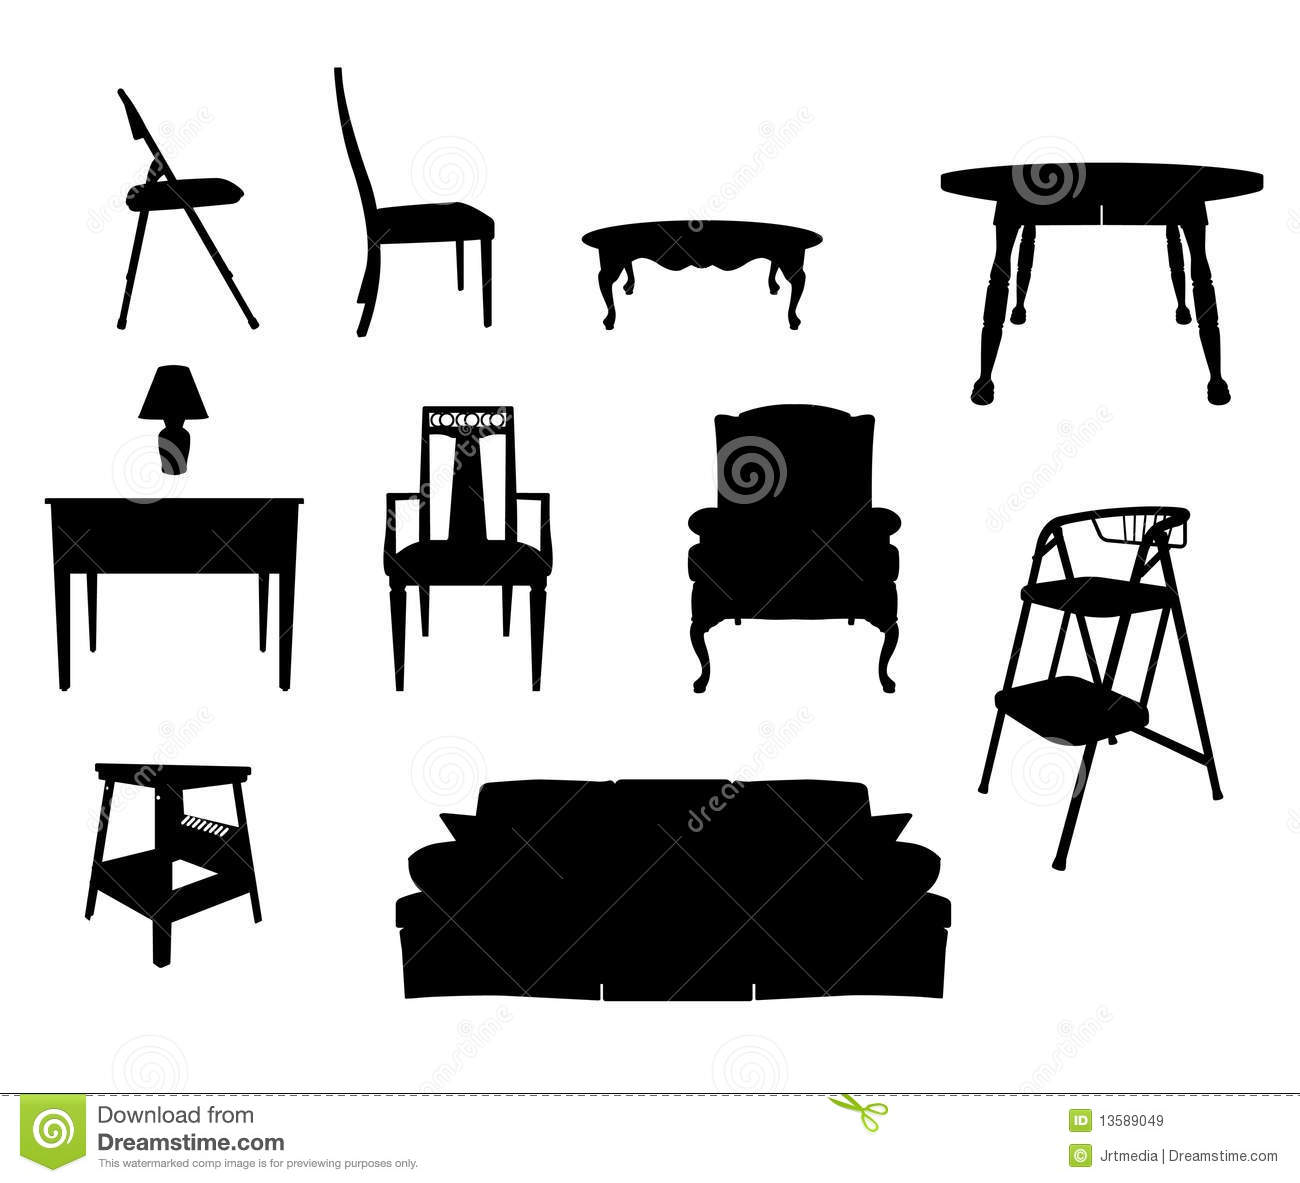 Antique chair silhouette - Furniture Silhouettes Royalty Free Stock Images